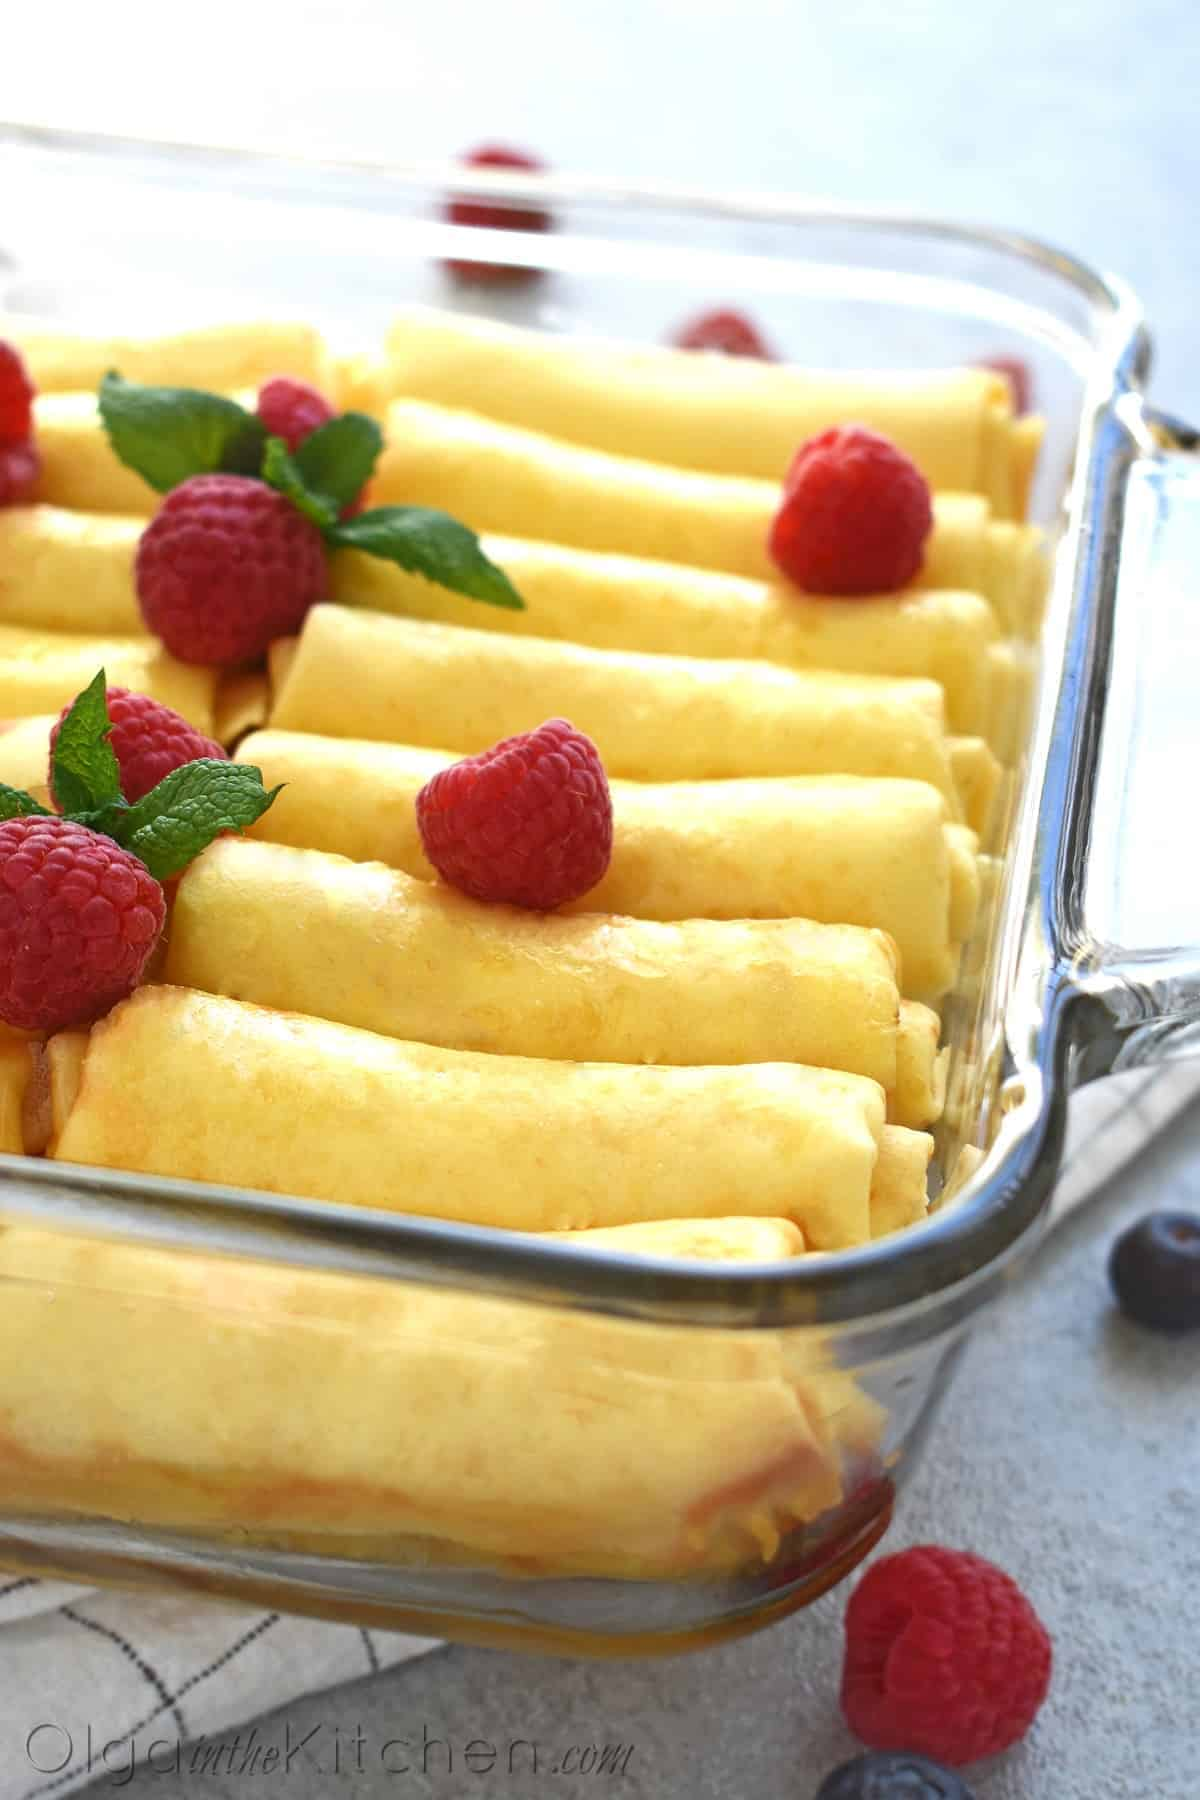 Crepes with Cheese (nalisniki): thin and delicate filled with farmer's cheese filling that melts when you cook in butter or oil. This dish can be made ahead of time, either in full or in part. It's one of the major dishes at weddings, holidays and major events. #cheesecrepes #crepes #farmerscheese #olgainthekitchen #cheeserecipes